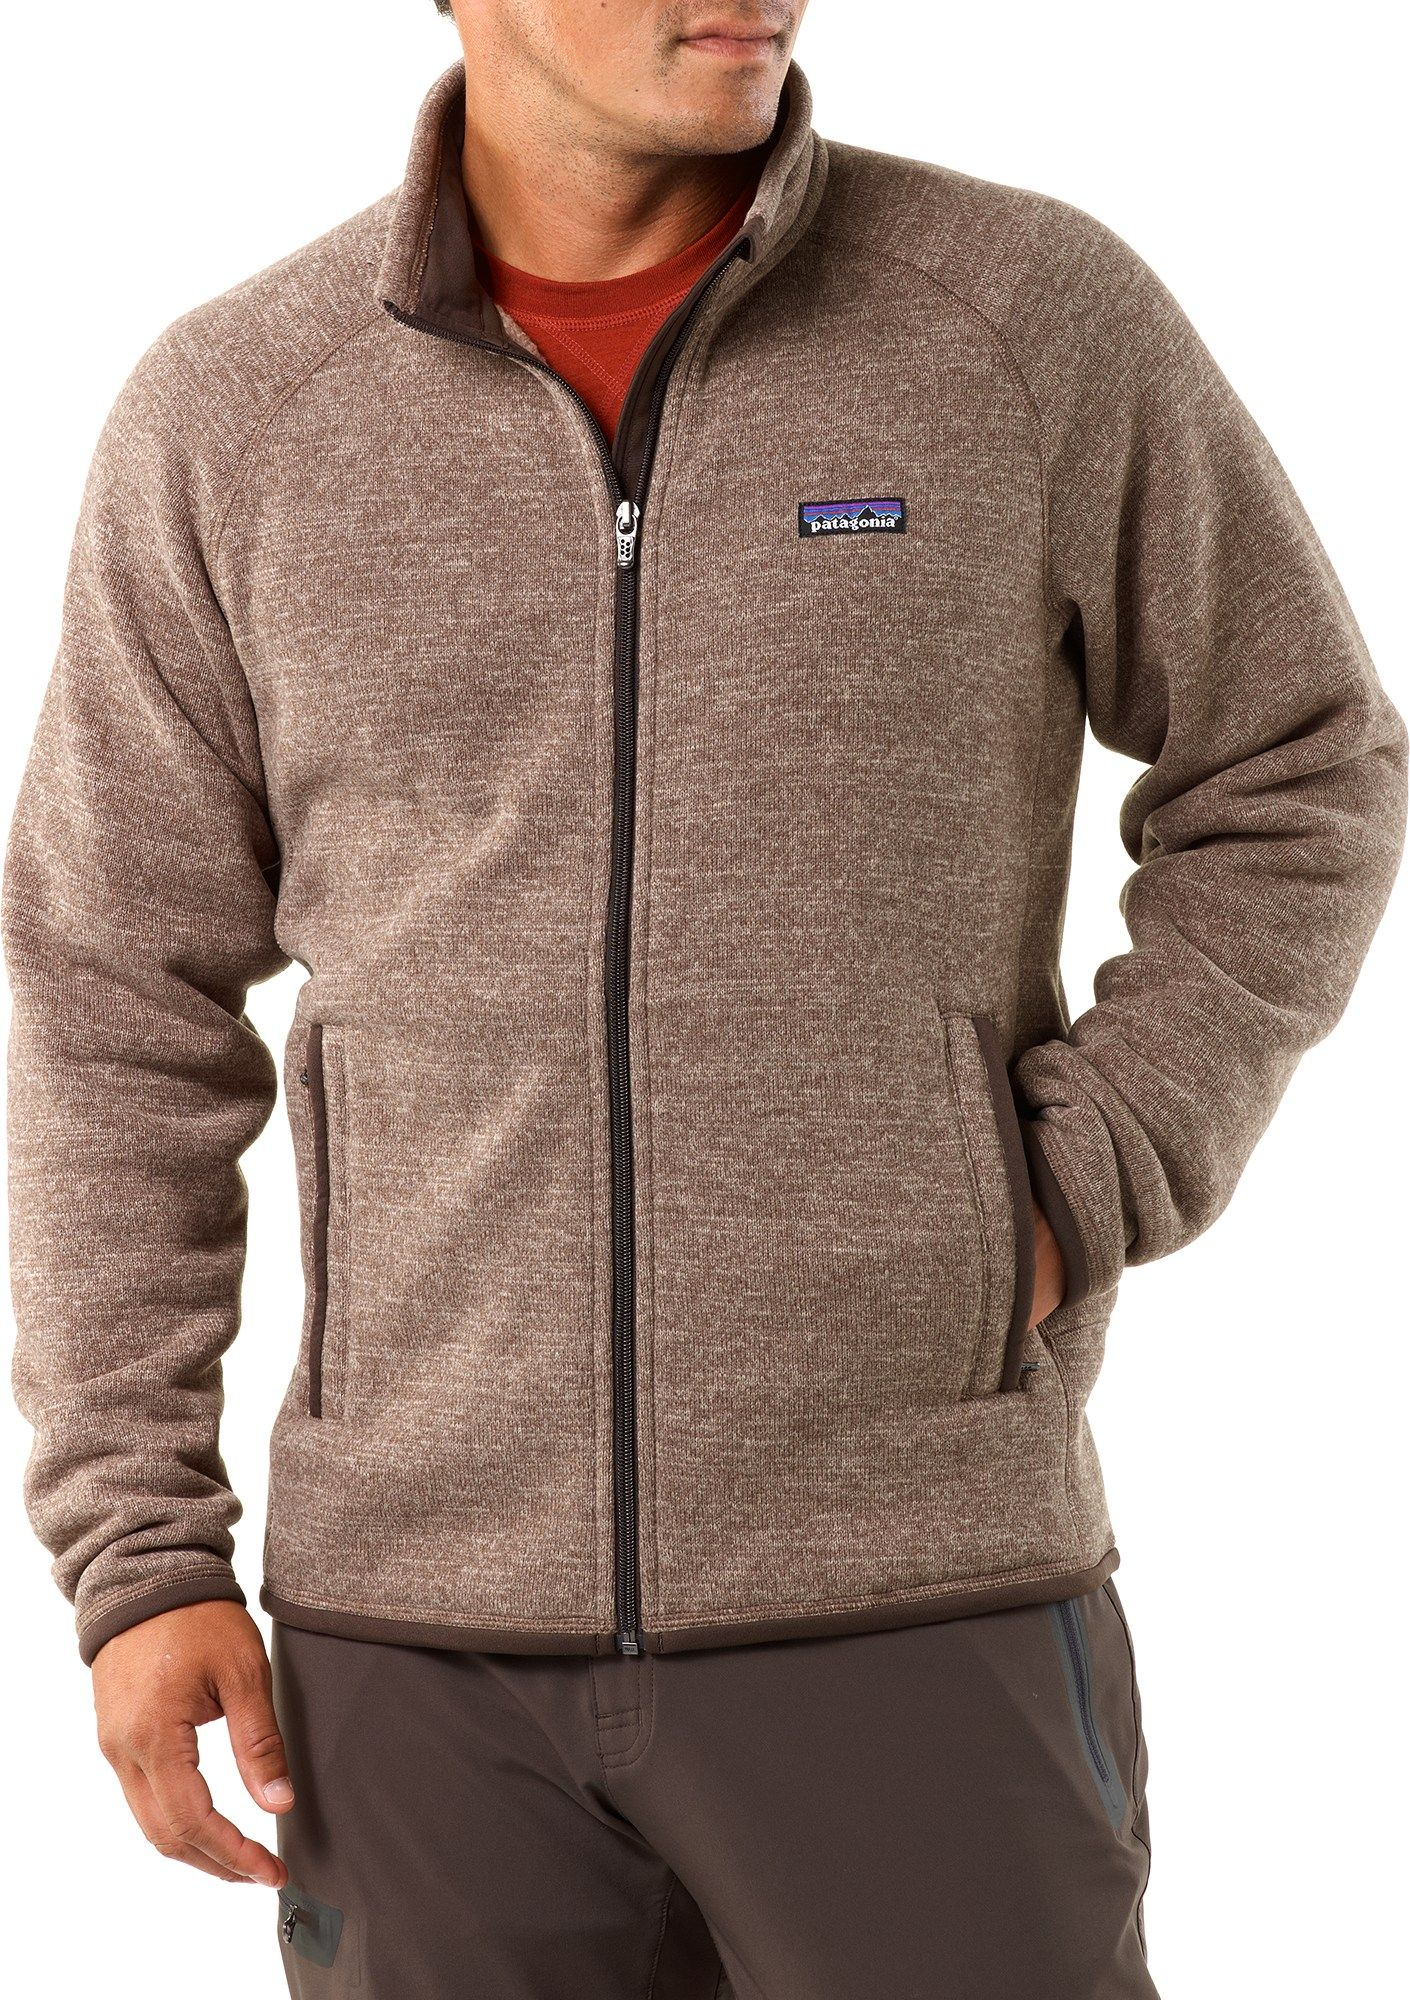 e22d9d5219 A Patagonia fleece jacket is a perfect gift for that special guy.  endorsed